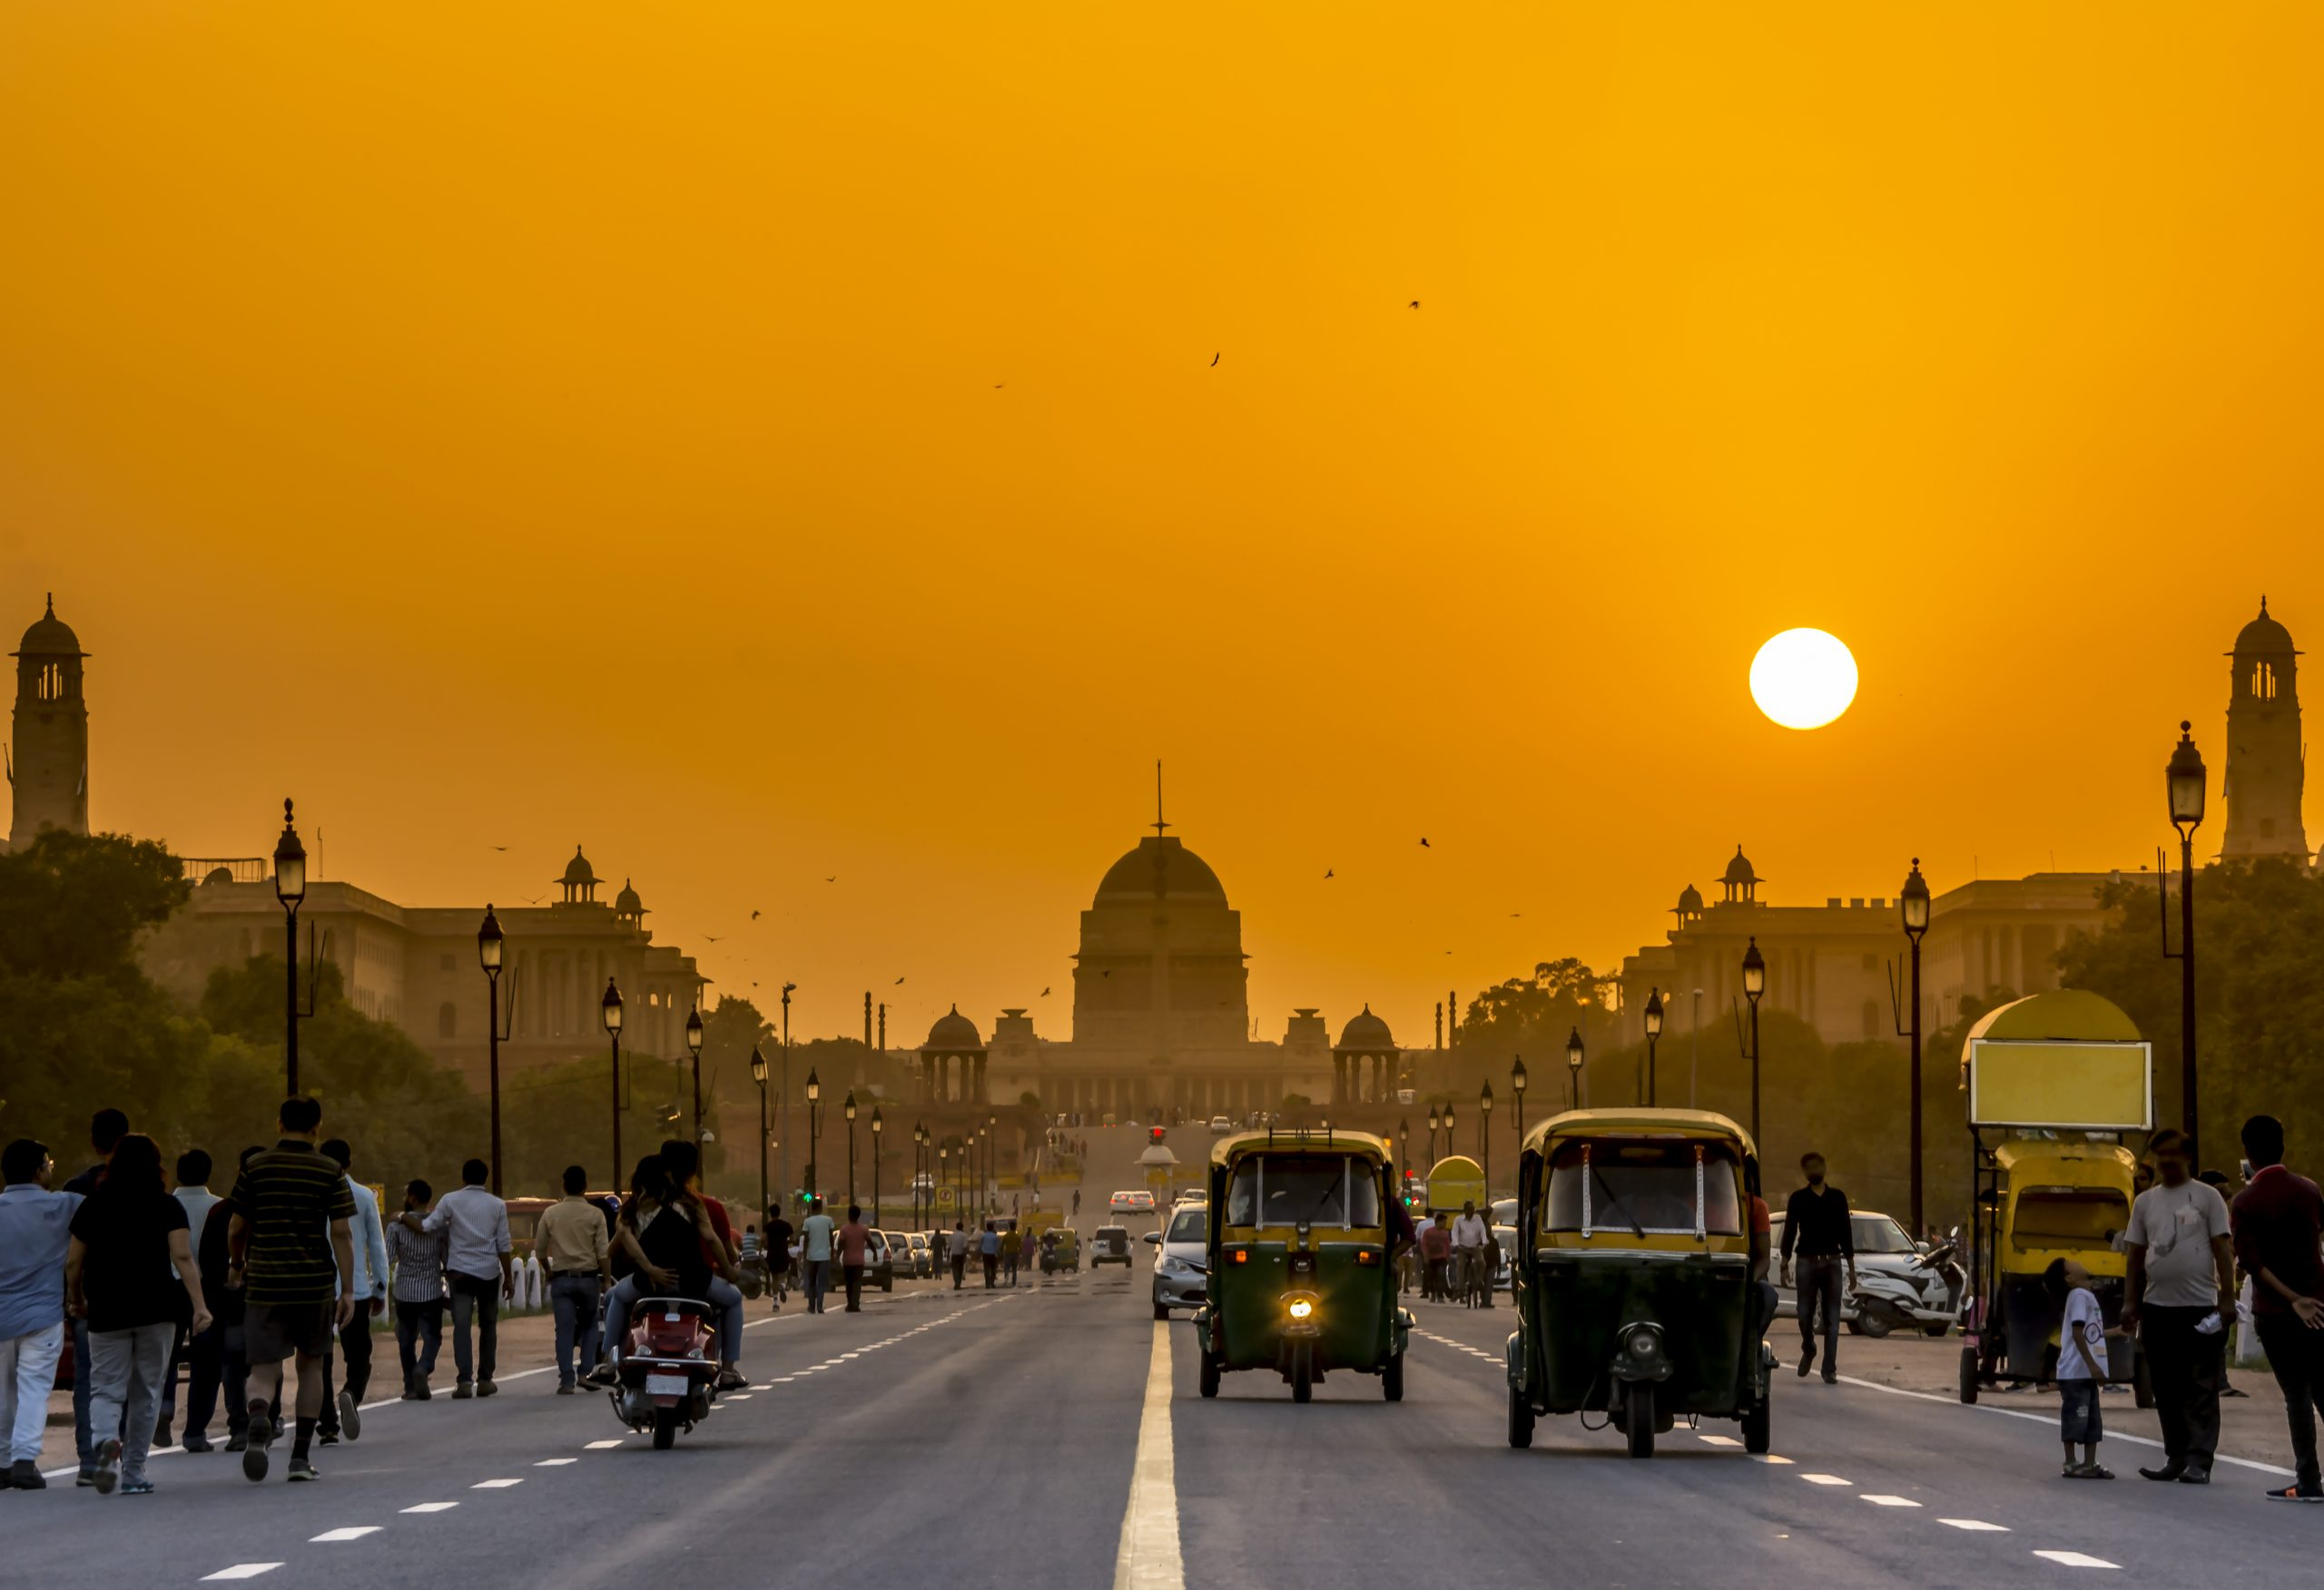 International briefing: How Covid-19 has accelerated India's shift to digital media